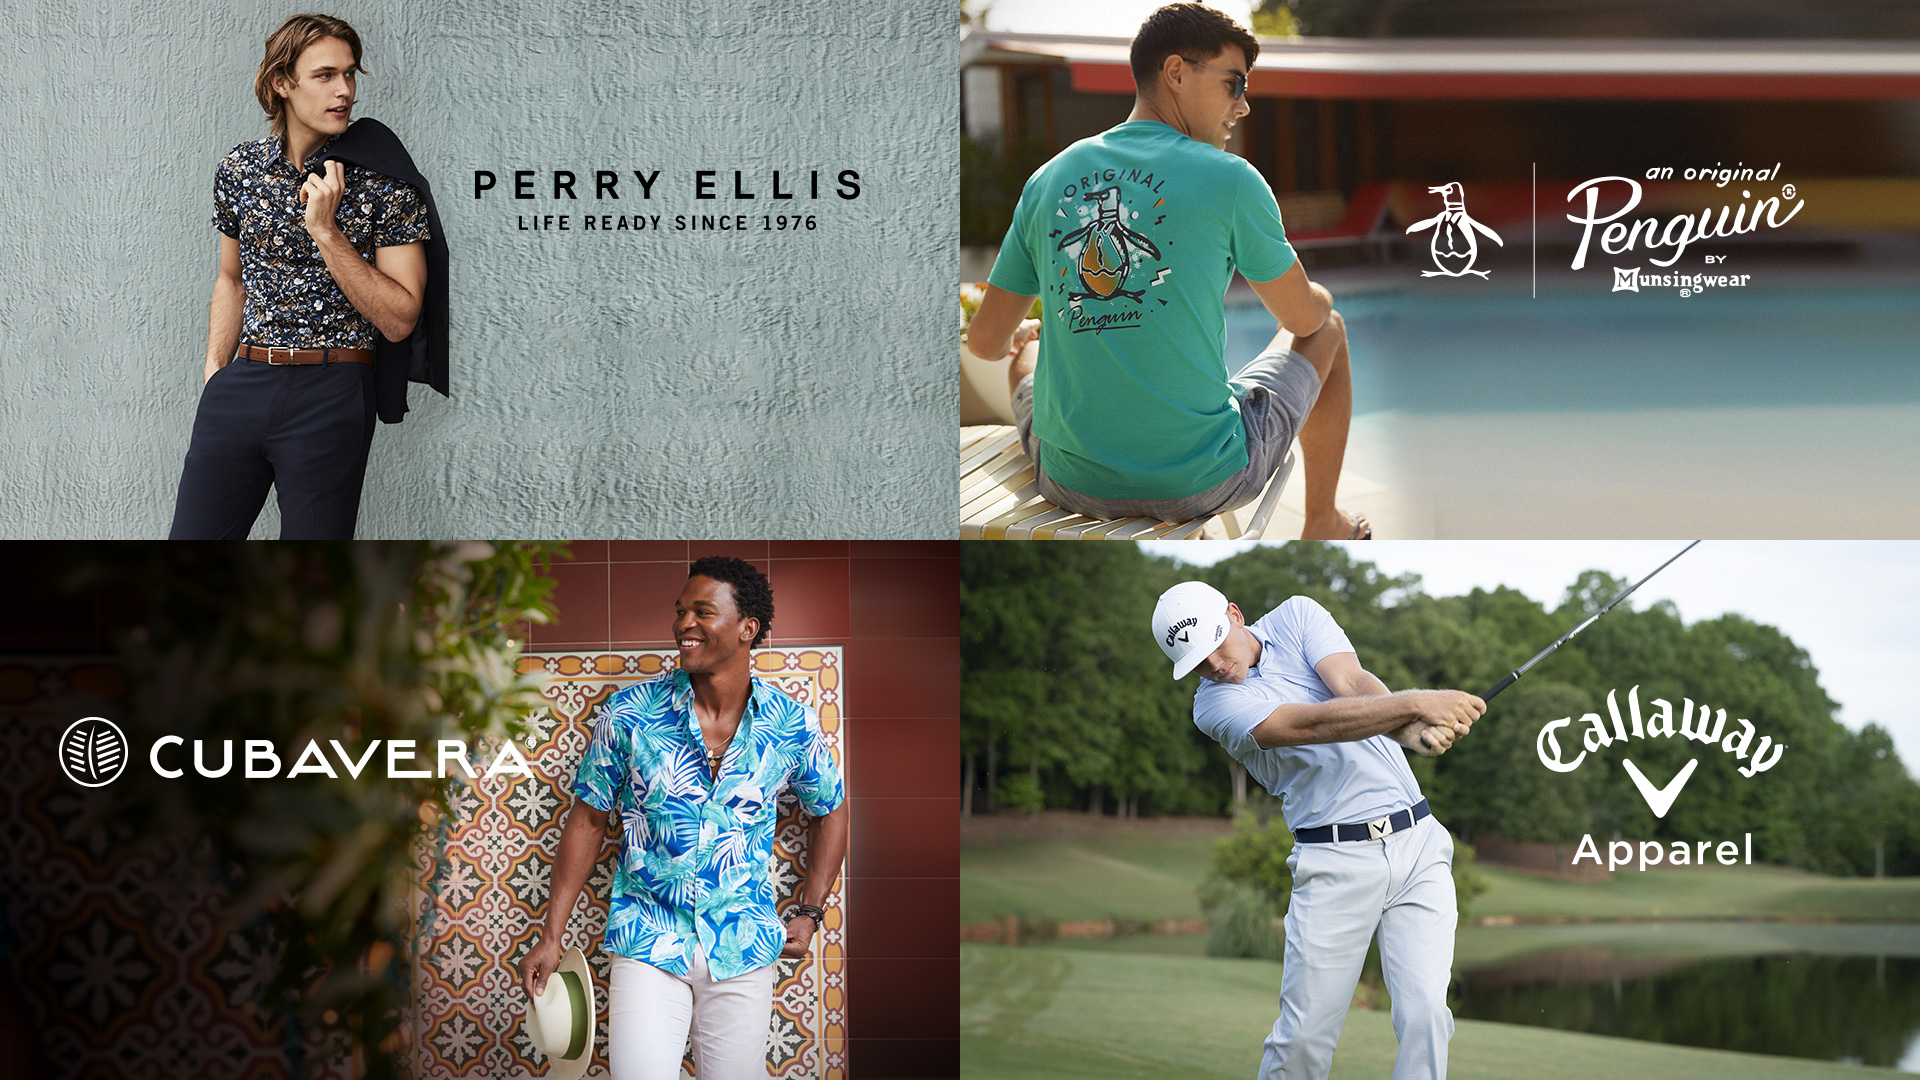 Top Gifts for Dad from Perry Ellis, Original Penguin, Callaway, and Cubavera